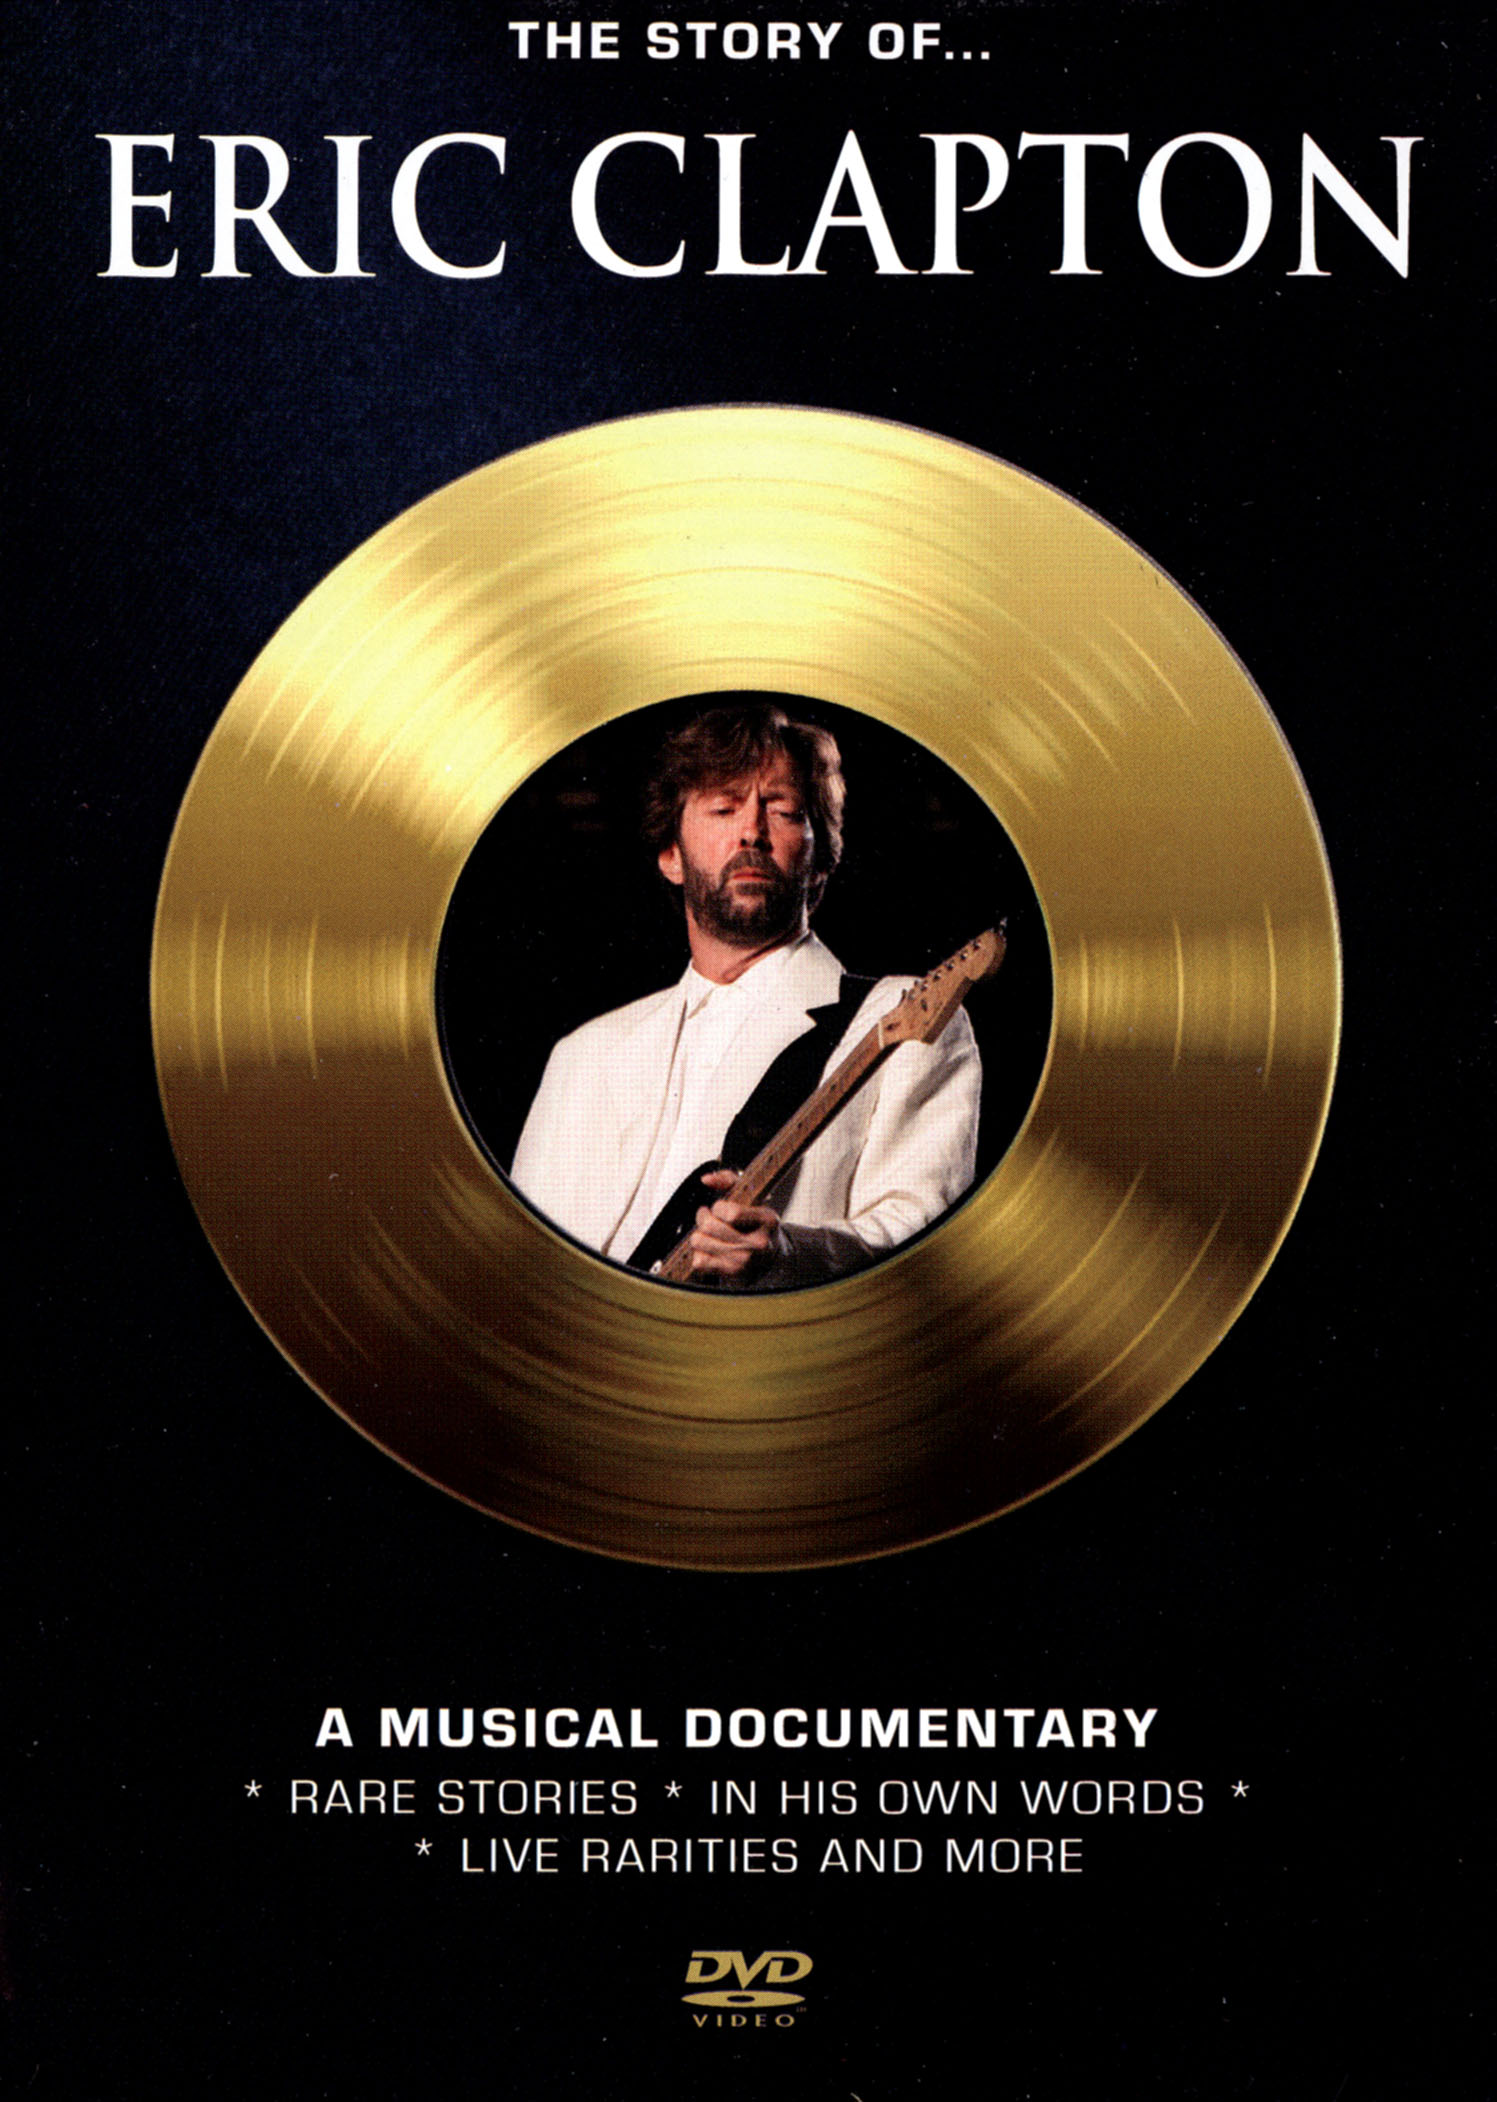 The Story of... Eric Clapton: A Musical Documentary